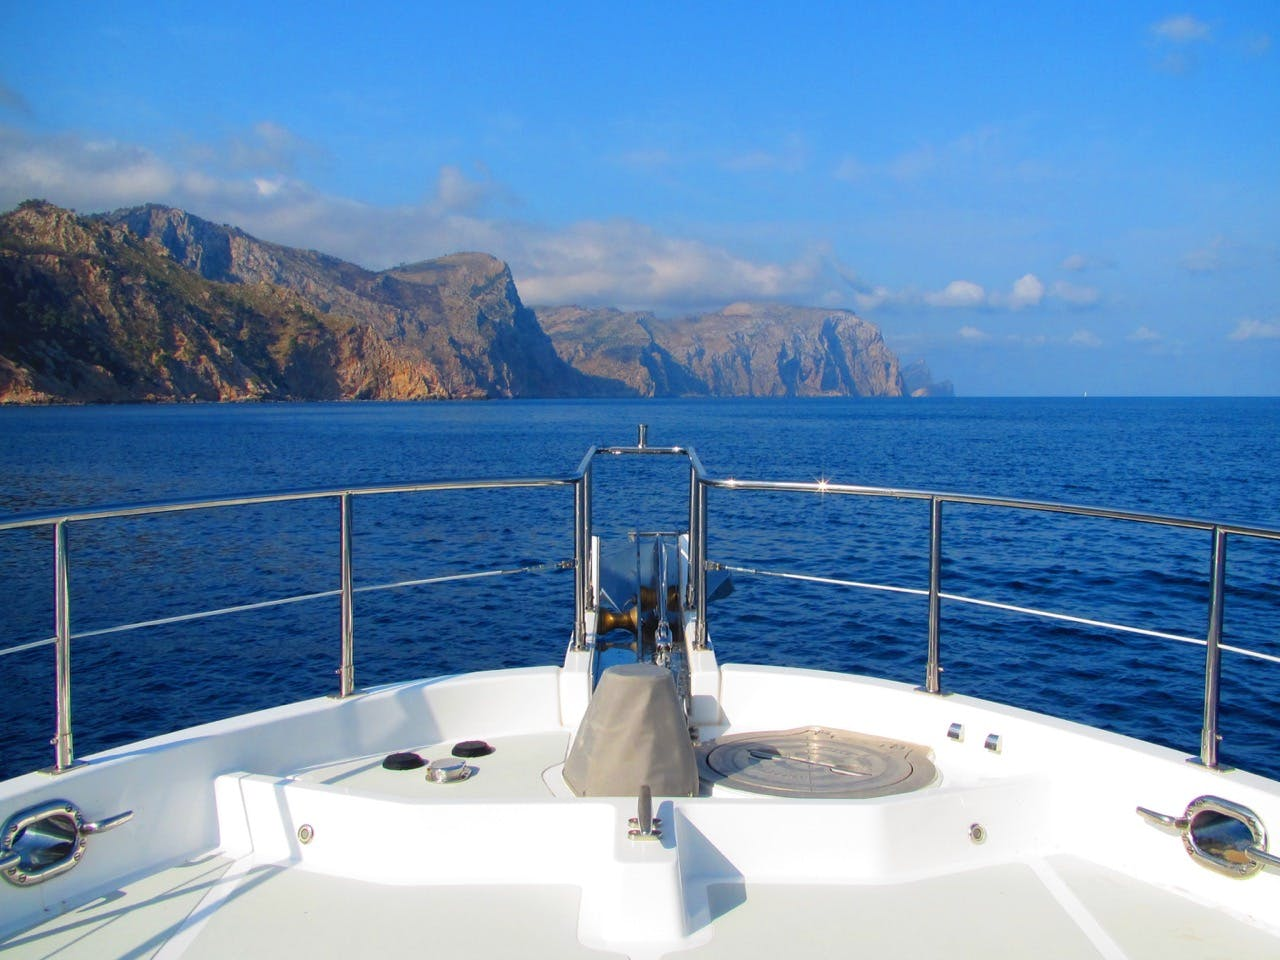 Sailing from Port de Soller to Sa Foradada